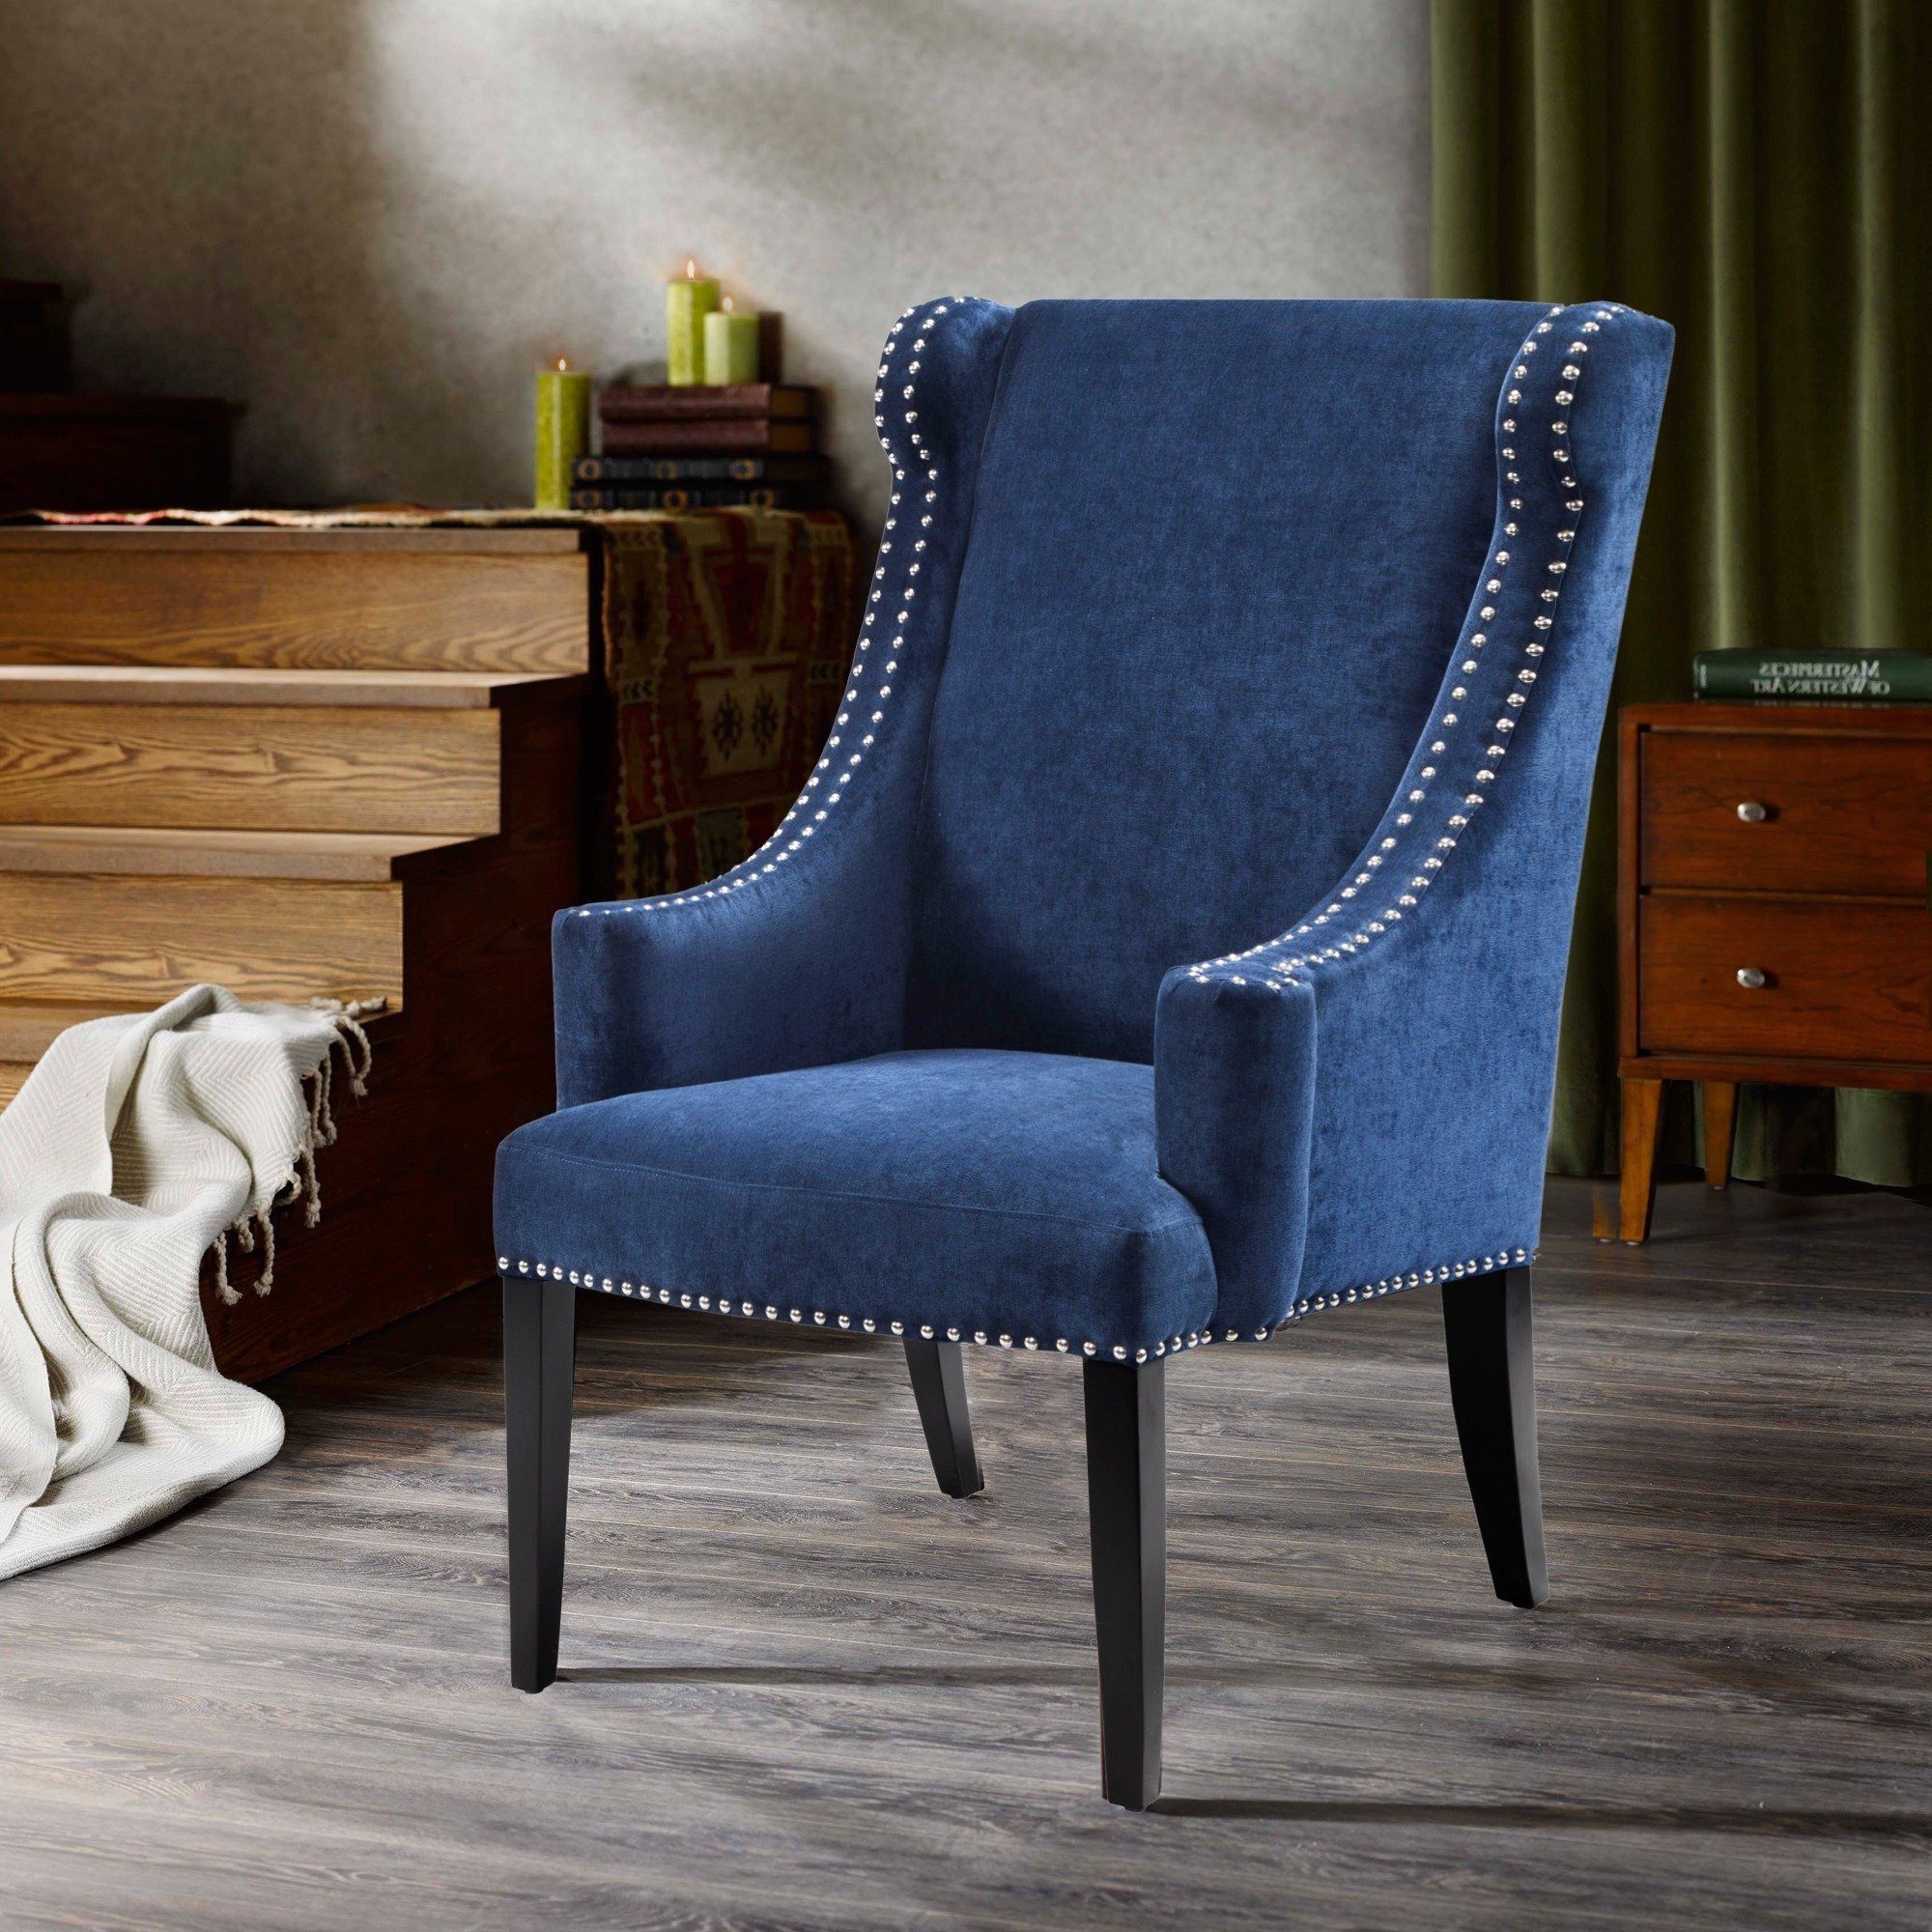 Lucy Grey Sofa Chairs Intended For Most Popular Shop Madison Park Lucy Blue High Back Wing Chair – Free Shipping (View 11 of 20)